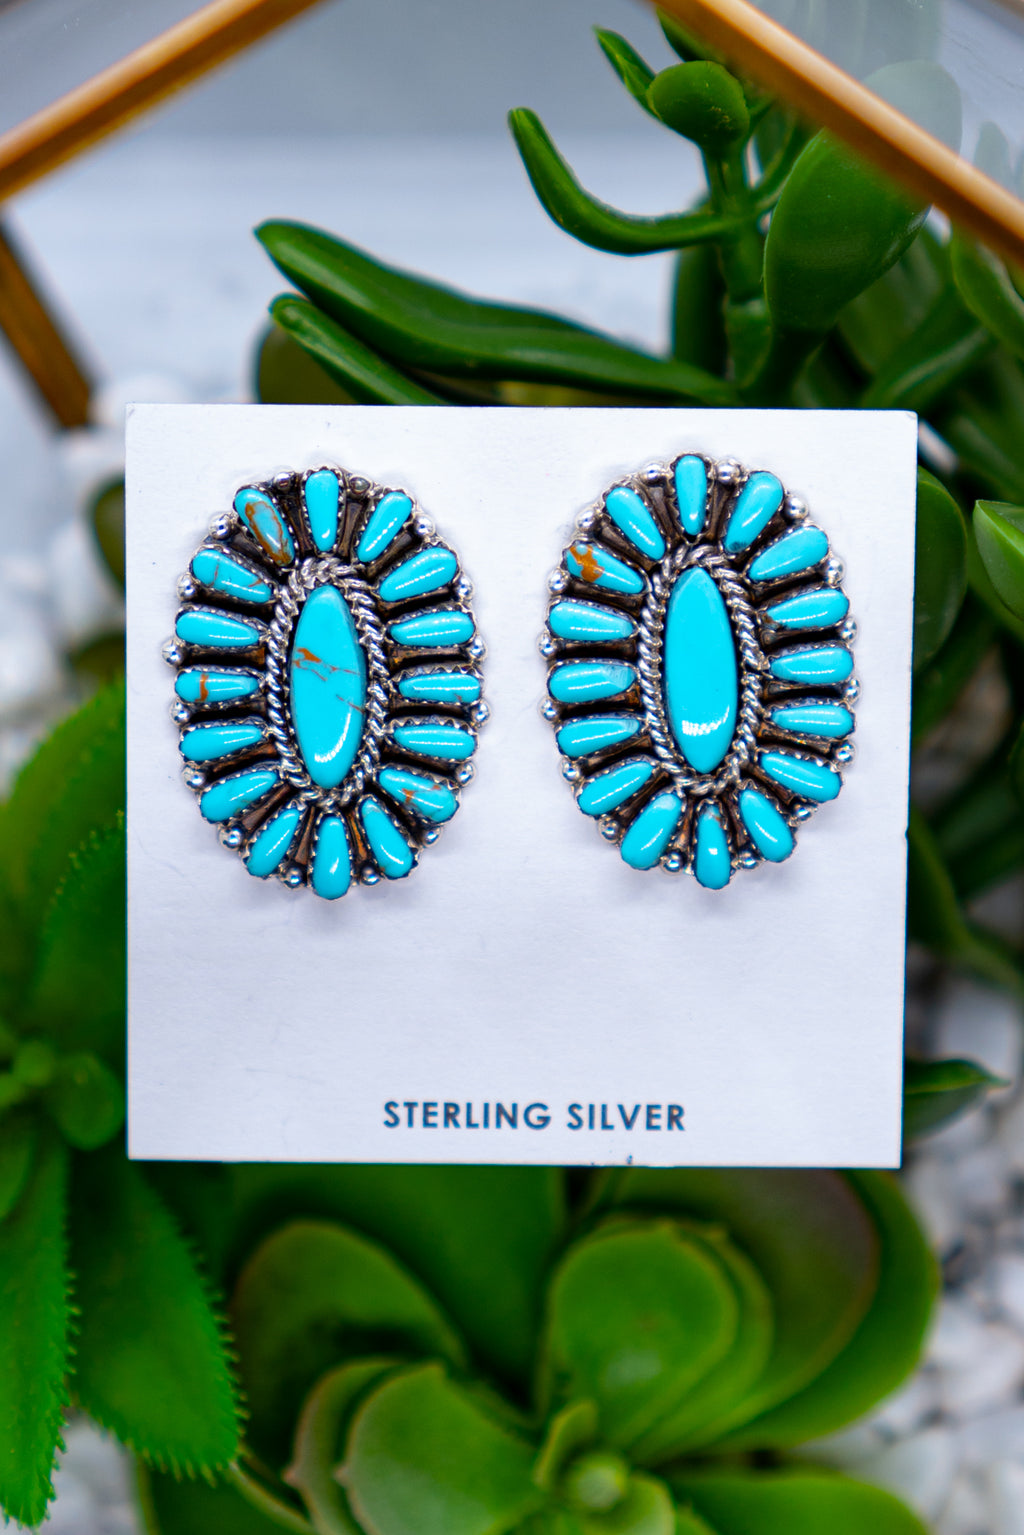 The Lennon Turquoise Sterling Silver Stud Earrings